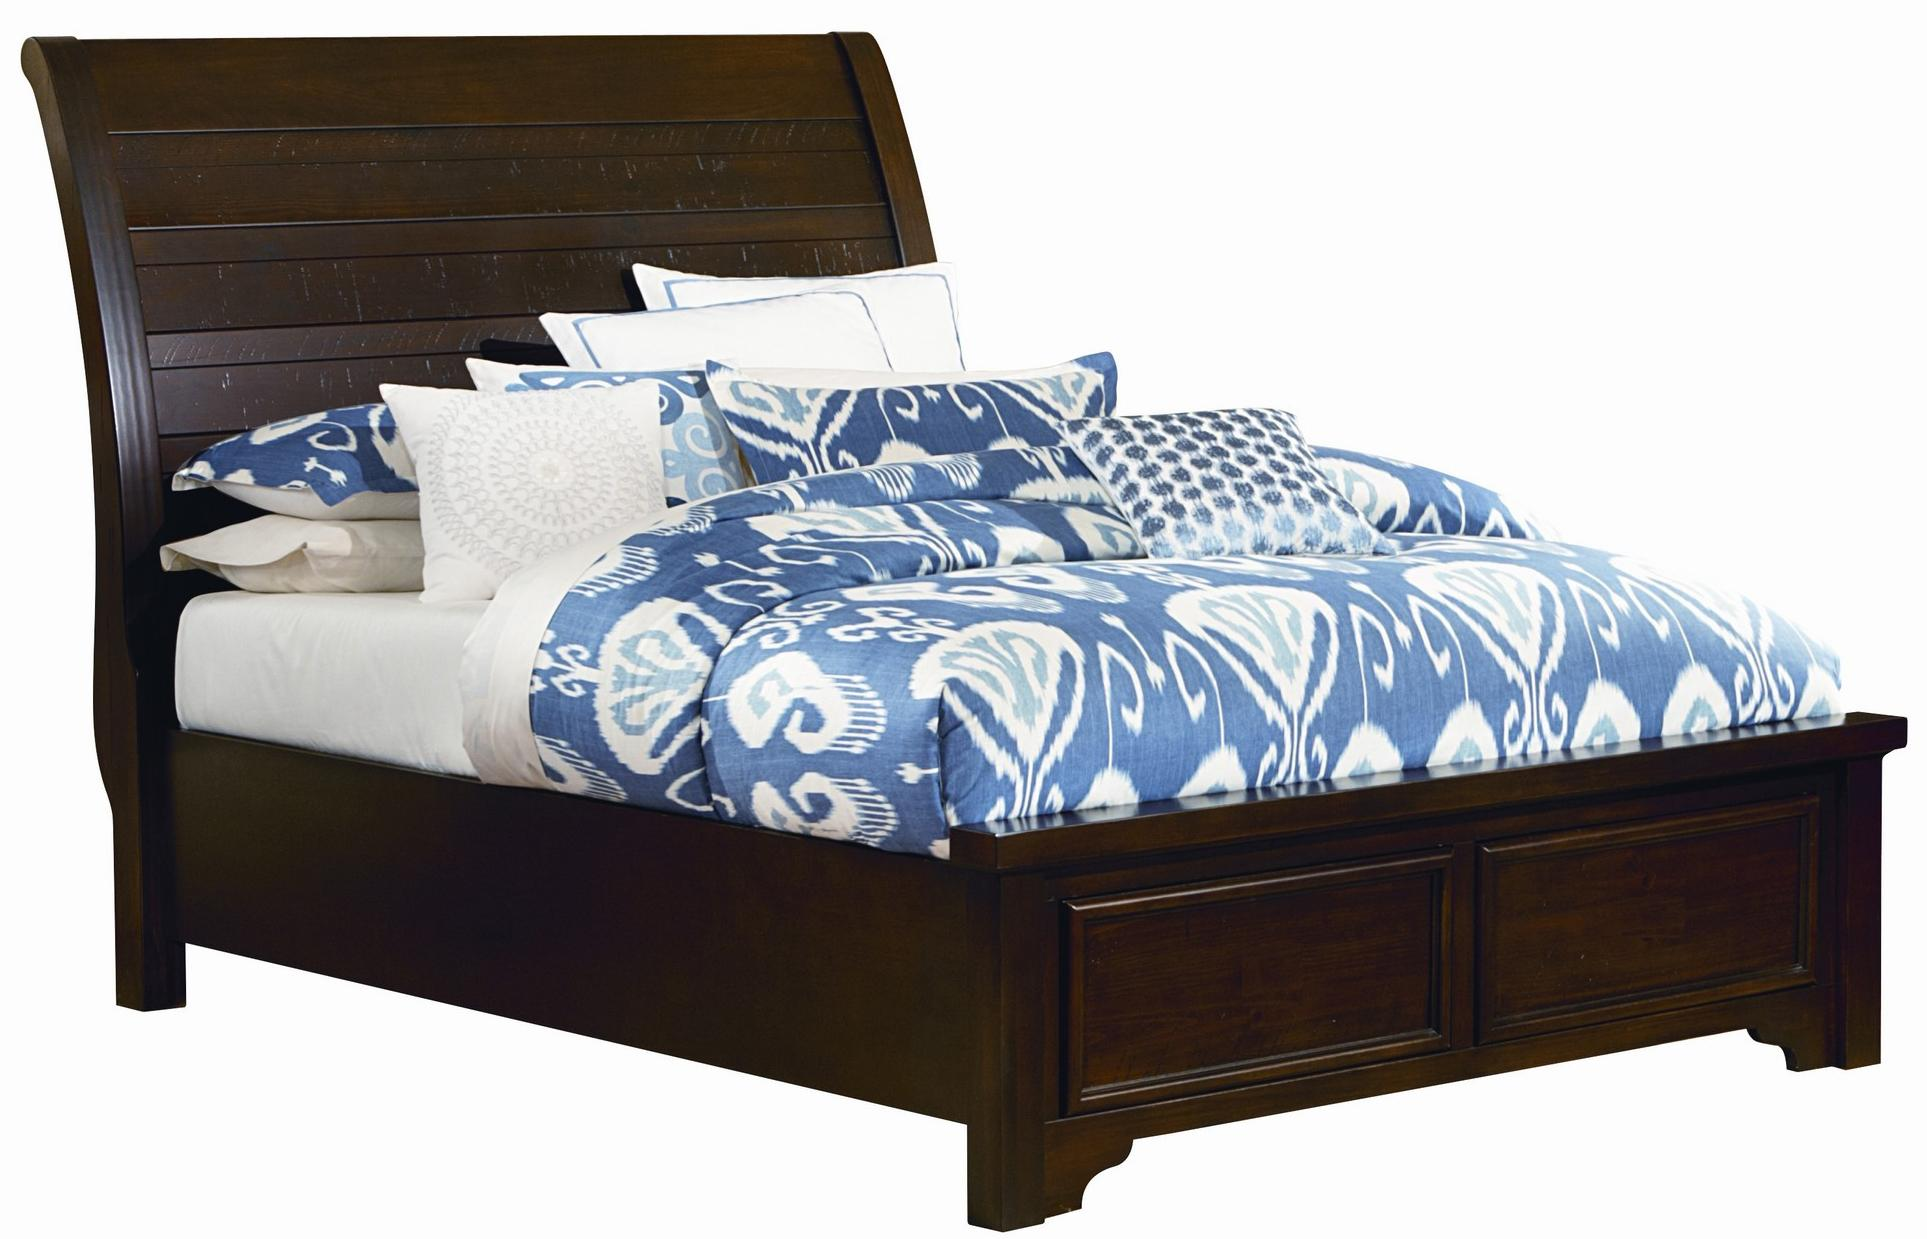 Vaughan Bassett Hanover Full Sleigh Low Profile Bed - Item Number: 810-522+144+711